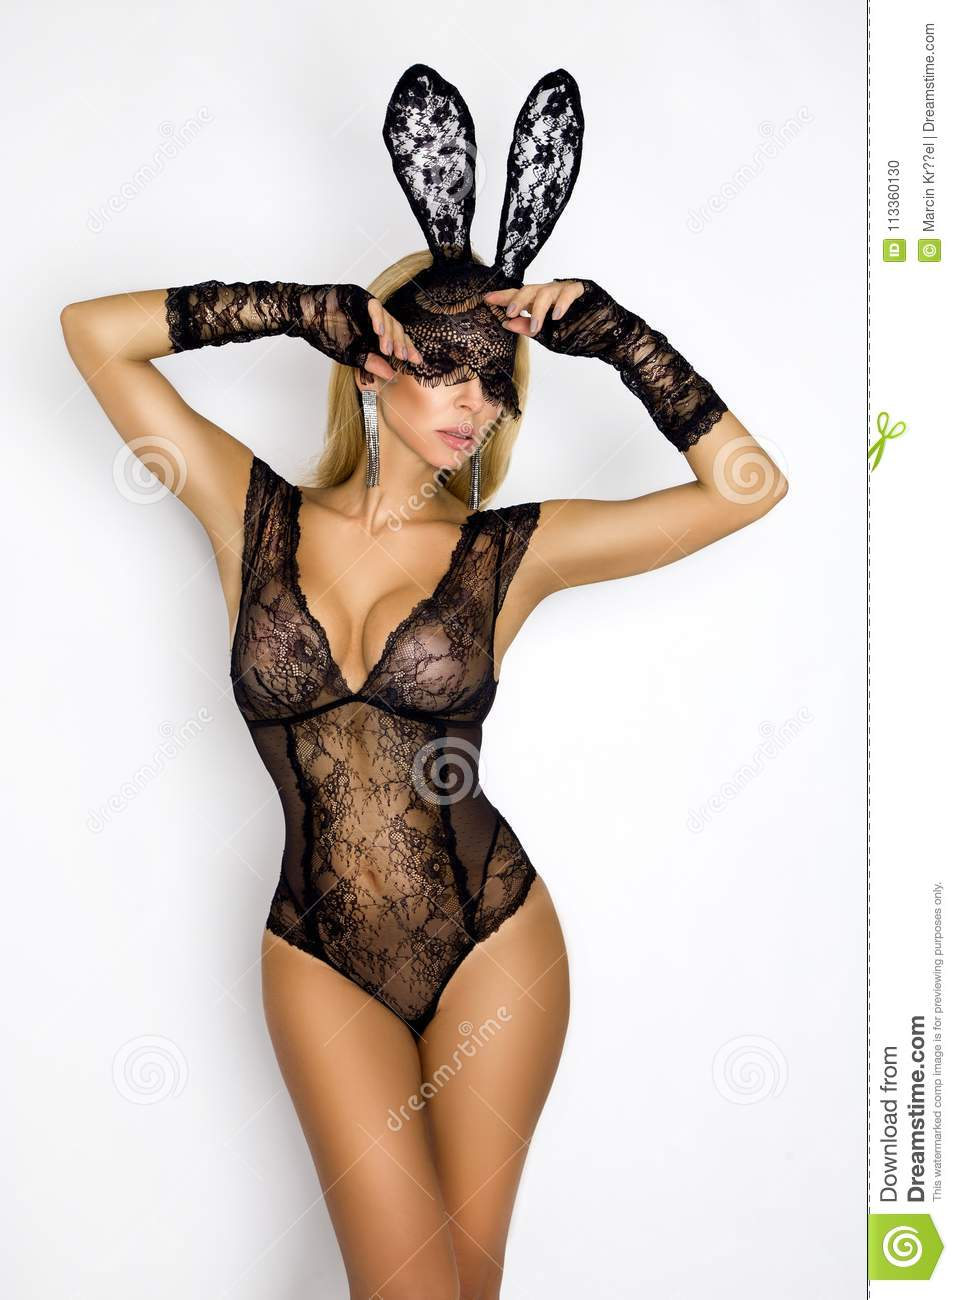 Beautiful, blonde woman in elegant lingerie and black lace Easter bunny mask